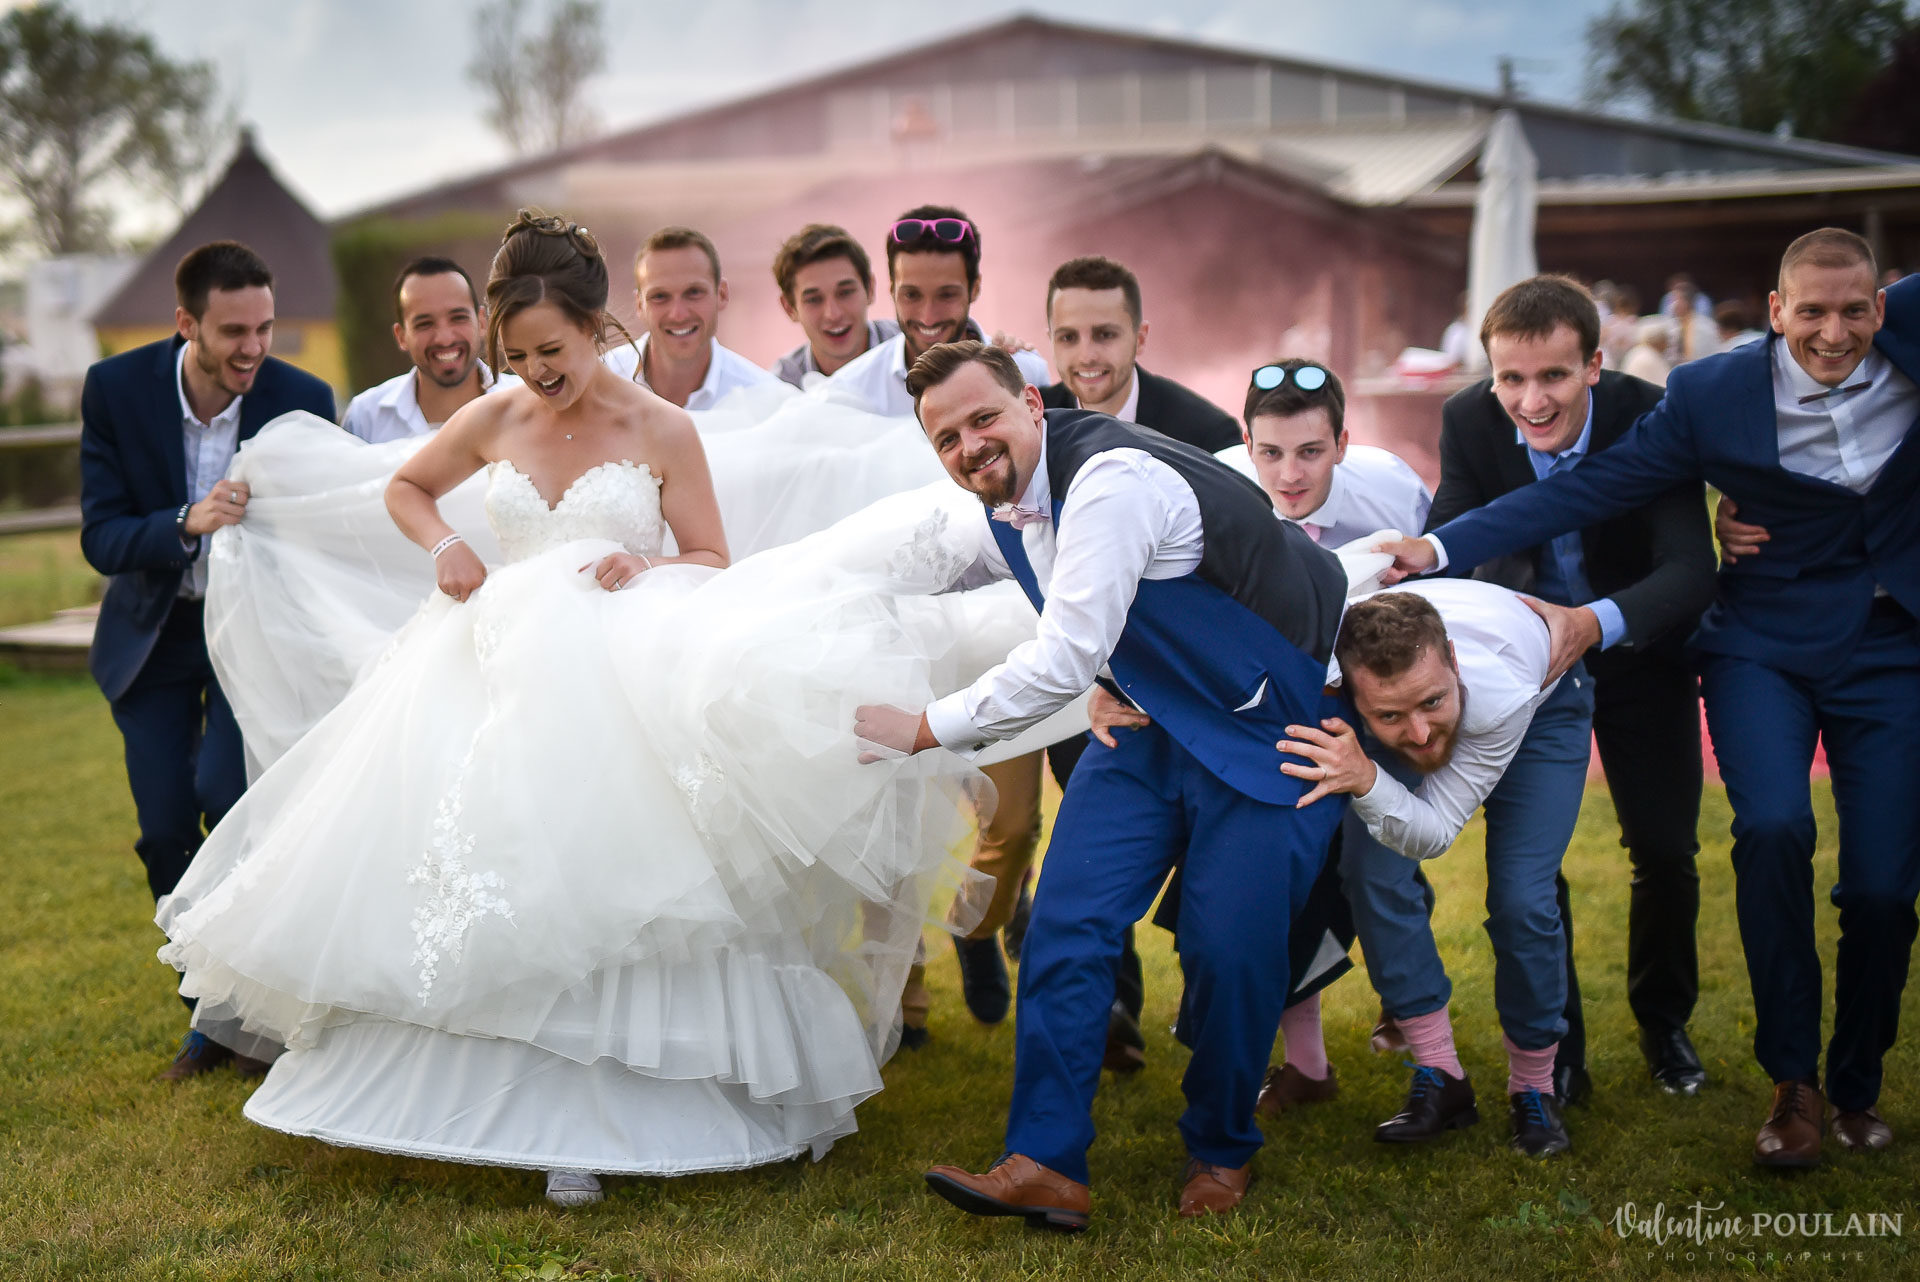 Mariage cool ferme weyerbach - Valentine Poulain yes